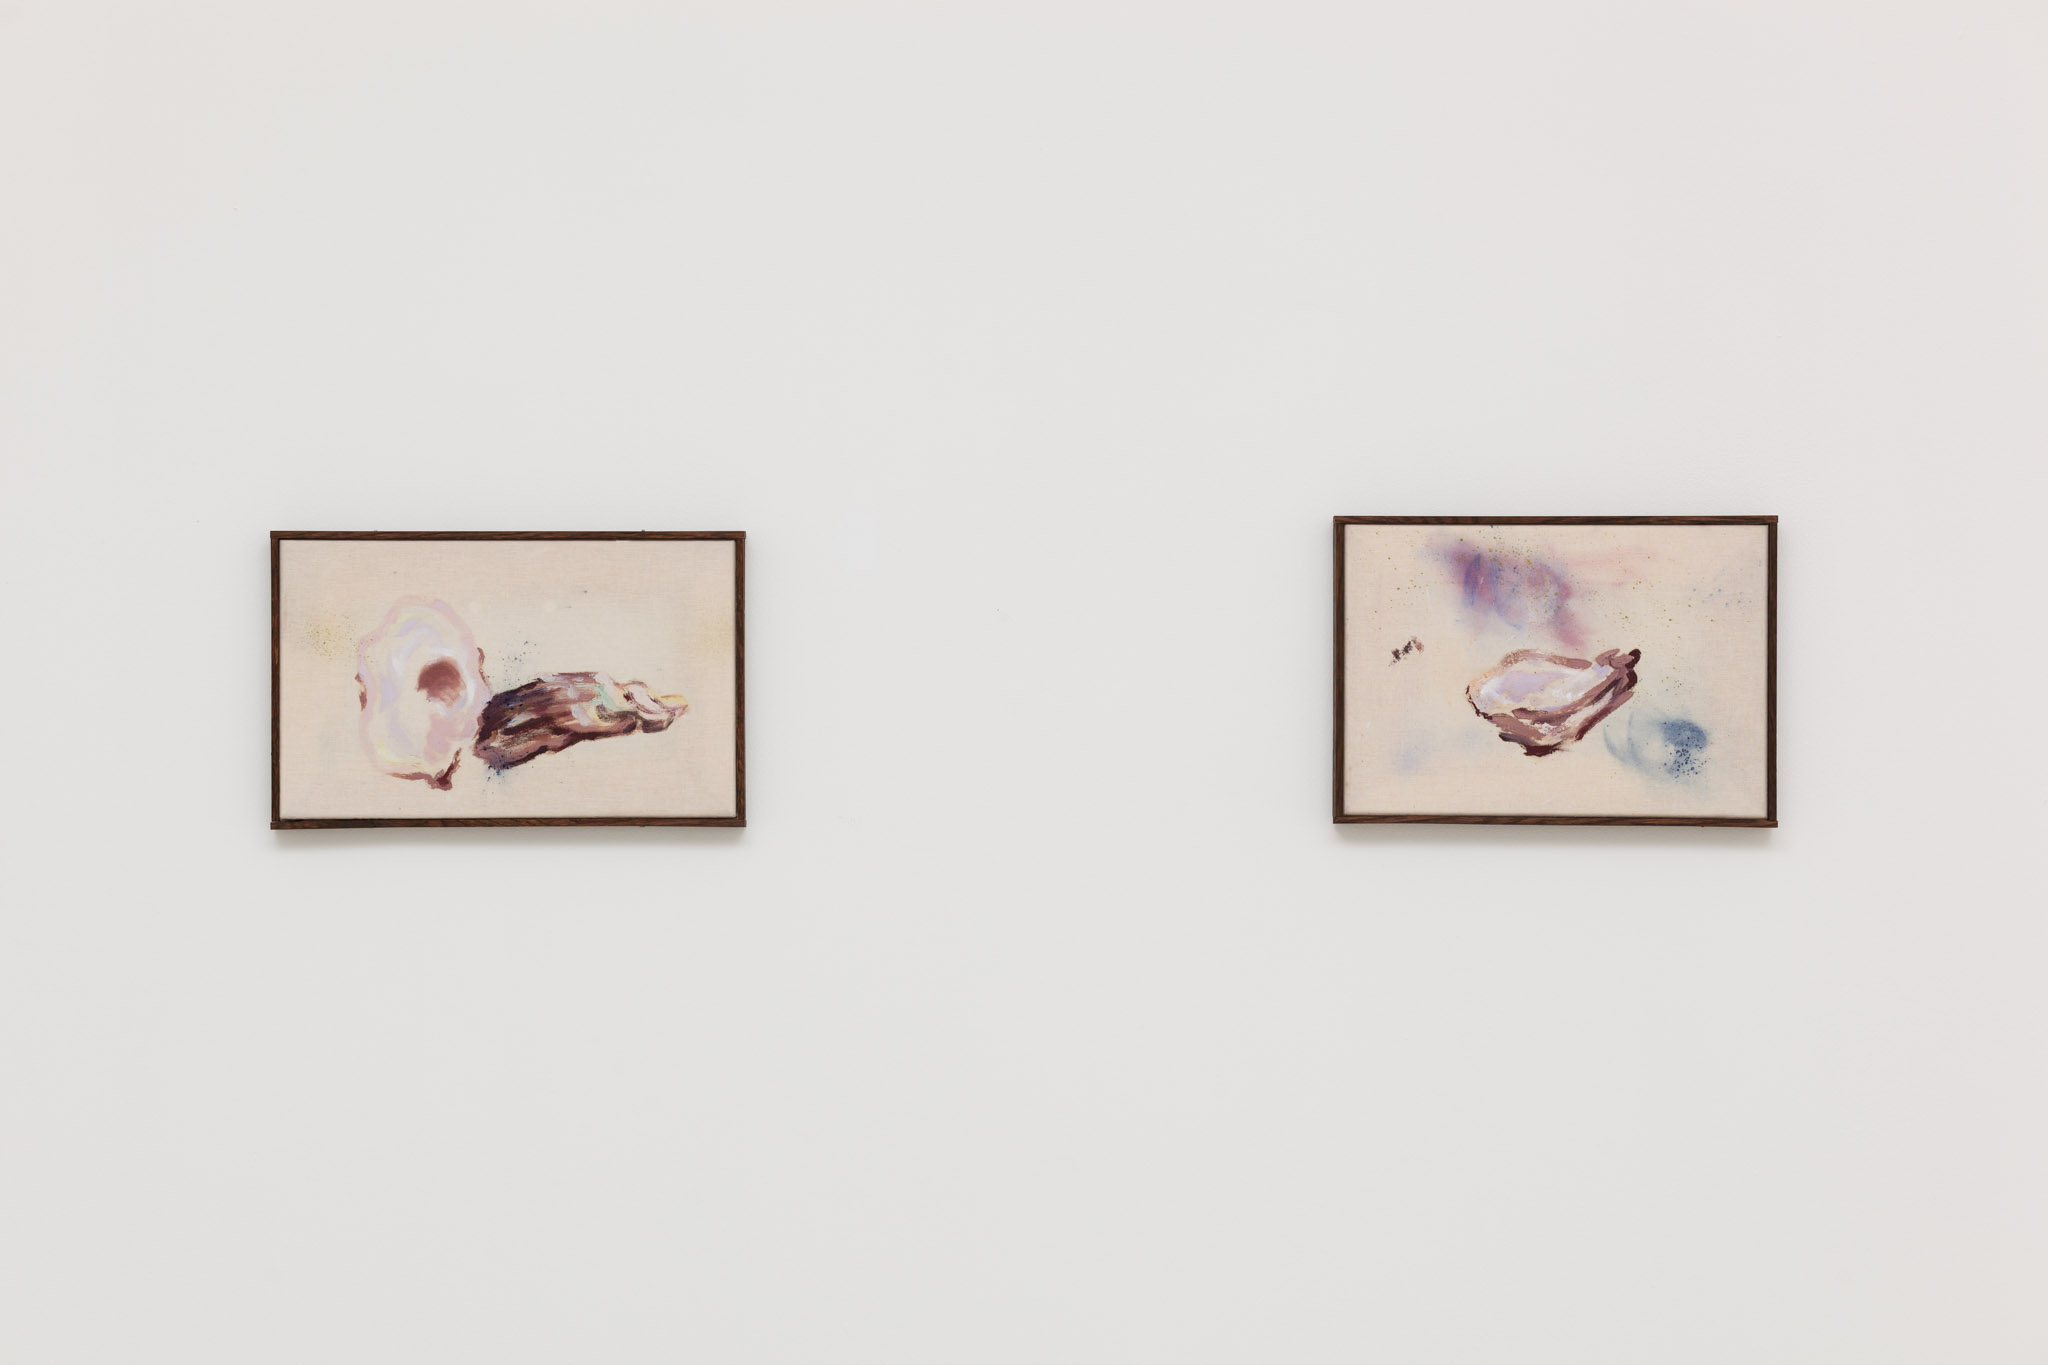 left: Oyster 4/7, 2014, oil and pigment on canvas, 32 x 20.2 cm, 12 5/8 x 8 ins right: Oyster 5/7, 2014, oil and pigment on canvas, 30 x 21 cm, 11 3/4 x 8 1/4 ins. Thumb of the Diver , Anna Zacharoff presented by Neue Alte Brücke